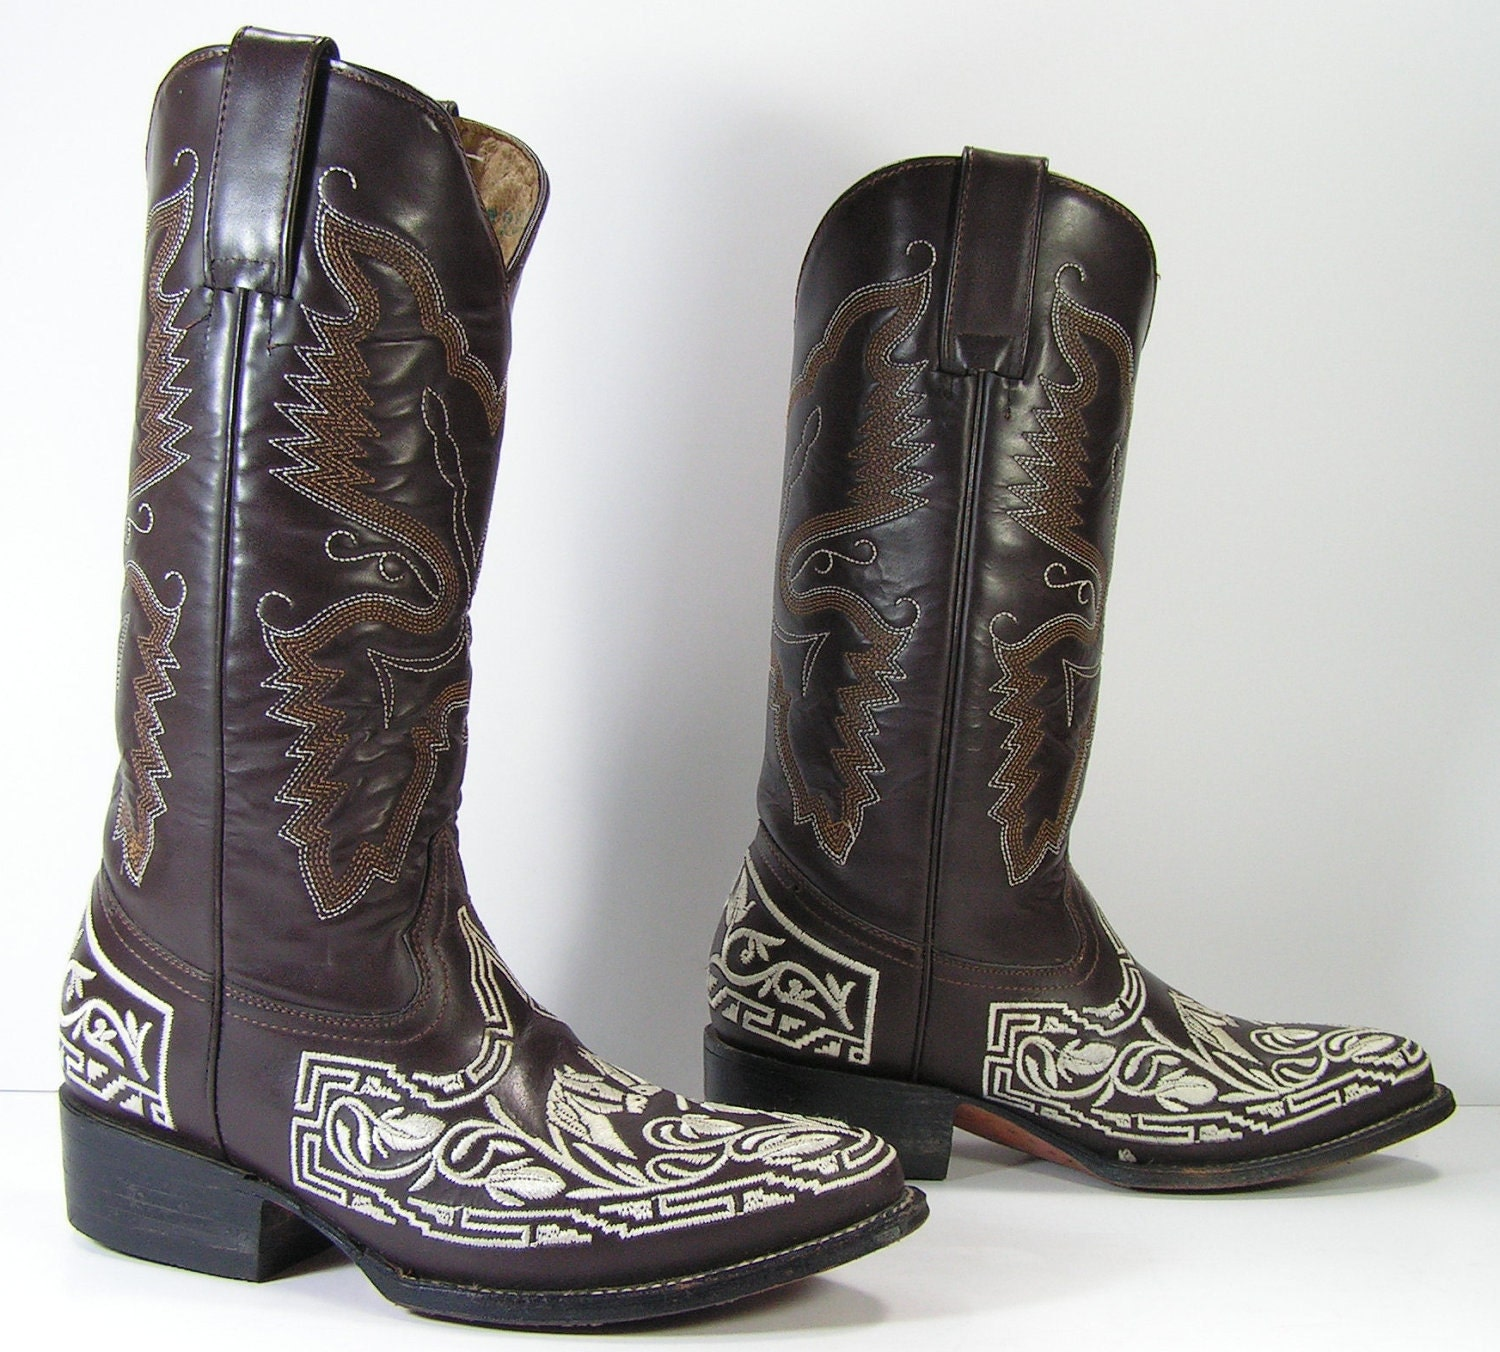 Perfect The Idea Was To Create Structural Shapes That Women Can Easily Move  Collection Of Animal Print Boots With Outthere Thighhigh Versions Or Metallic Cowboy Boots Featuring Playful Fringes